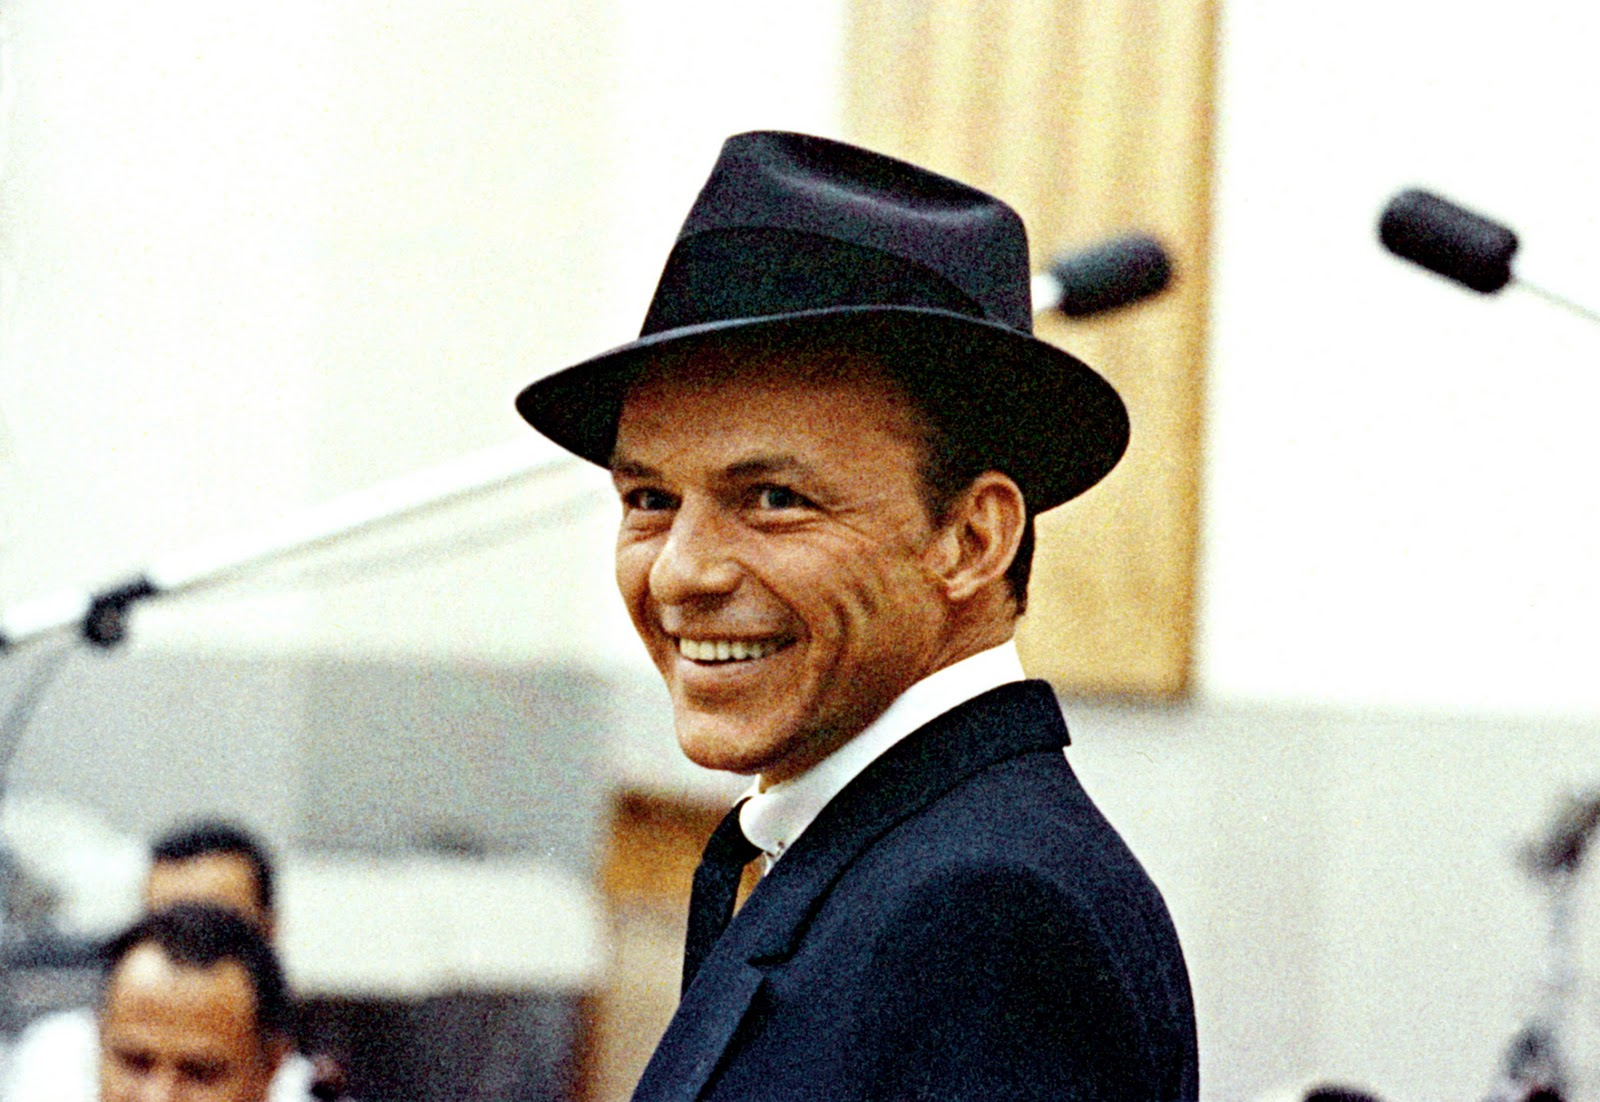 According to a new tell all book, Sinatra had sex with two different First ...